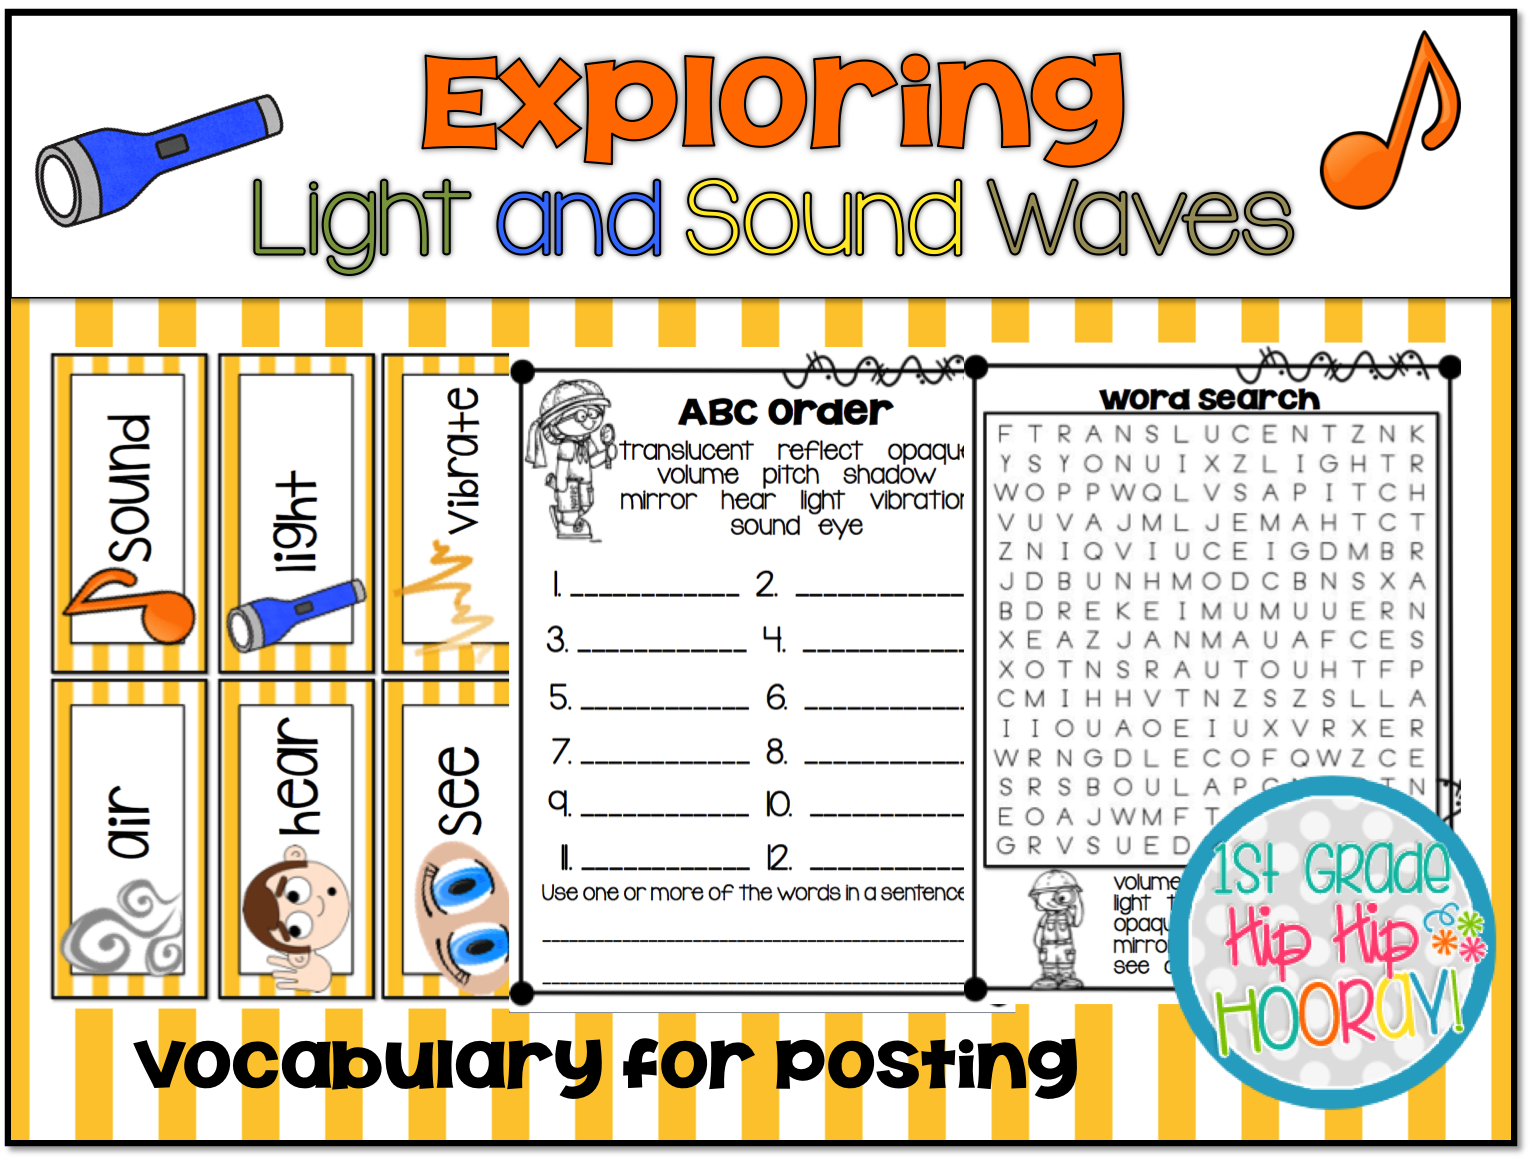 1st Grade Hip Hip Hooray Exploring Light And Sound Waves